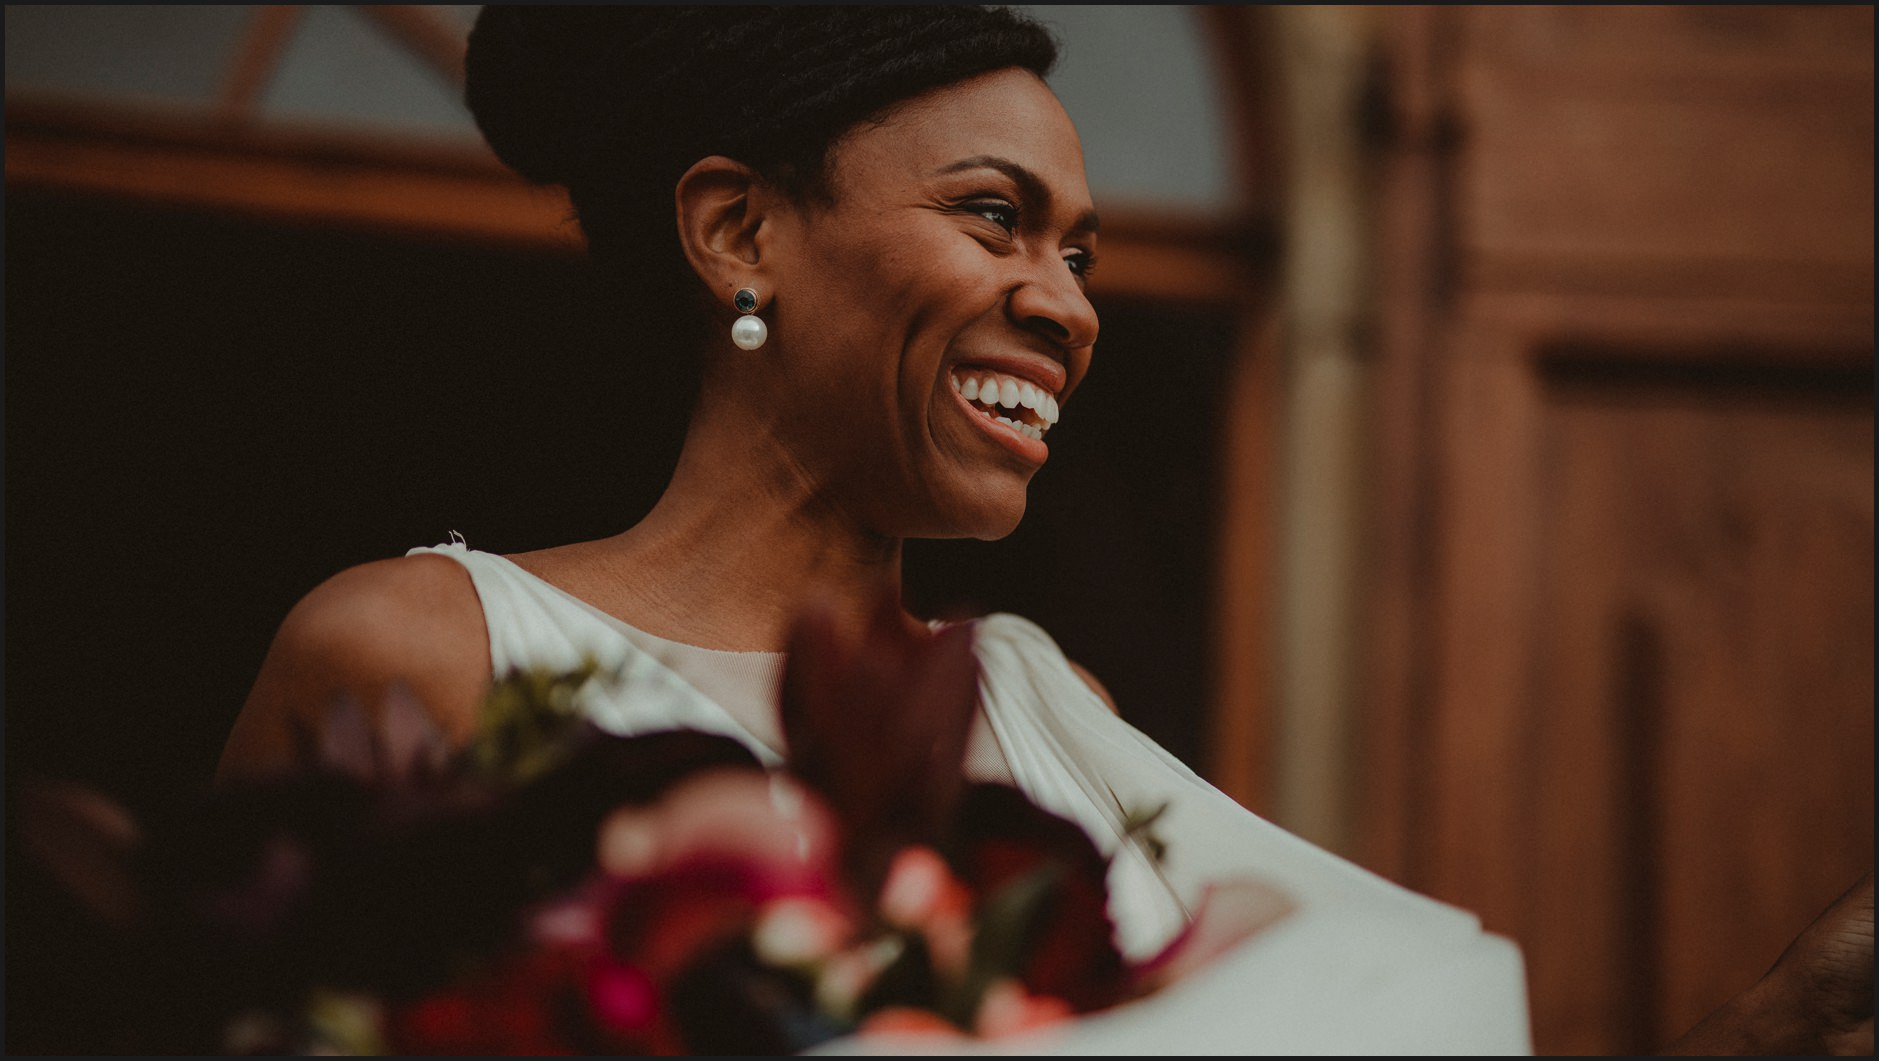 portrait, bride, wedding, smile